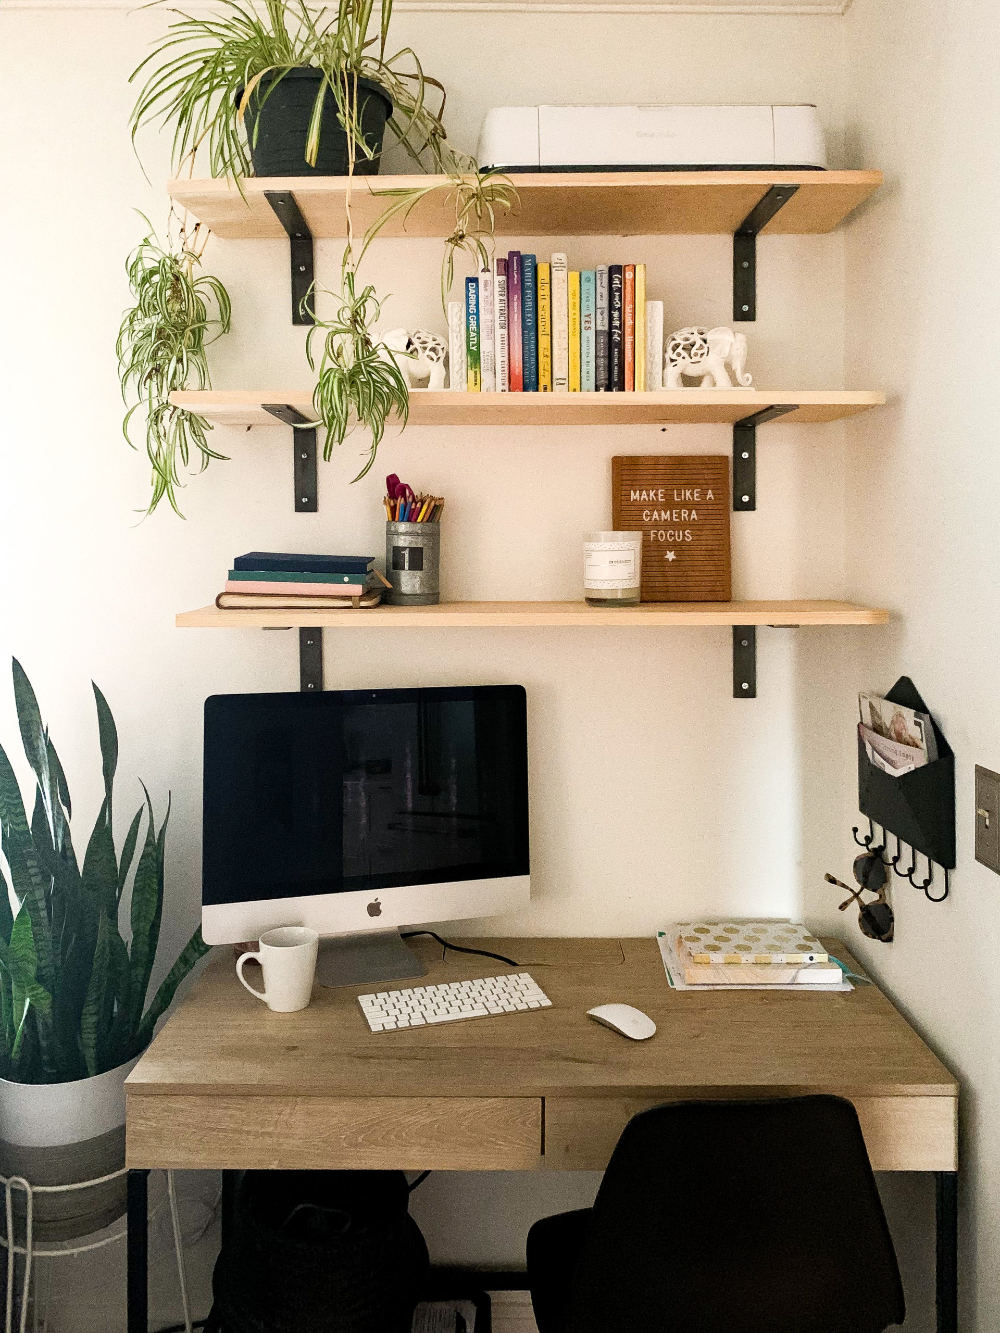 How to Create a Home Office in a Living Room: DIY